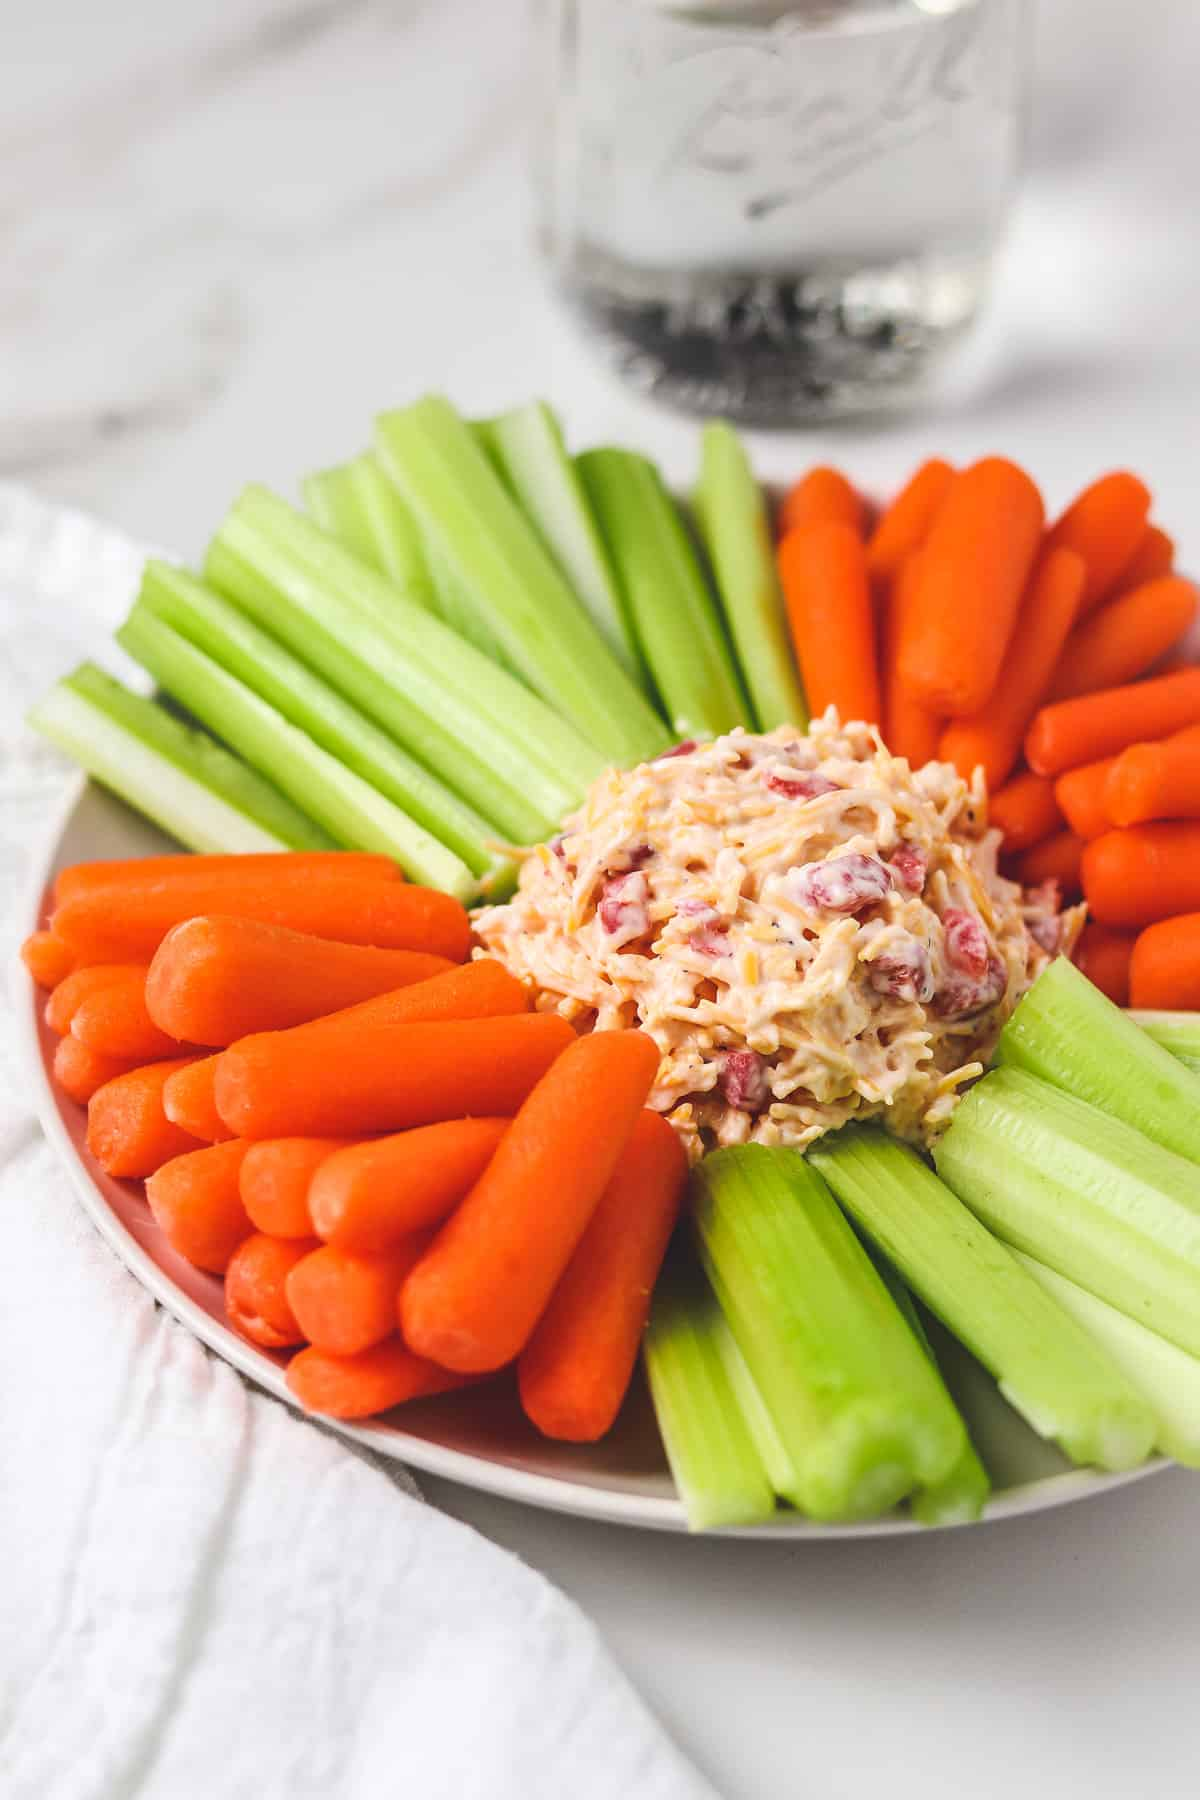 pimento cheese on a plate with carrots and celery with white napkin and water in mason jar